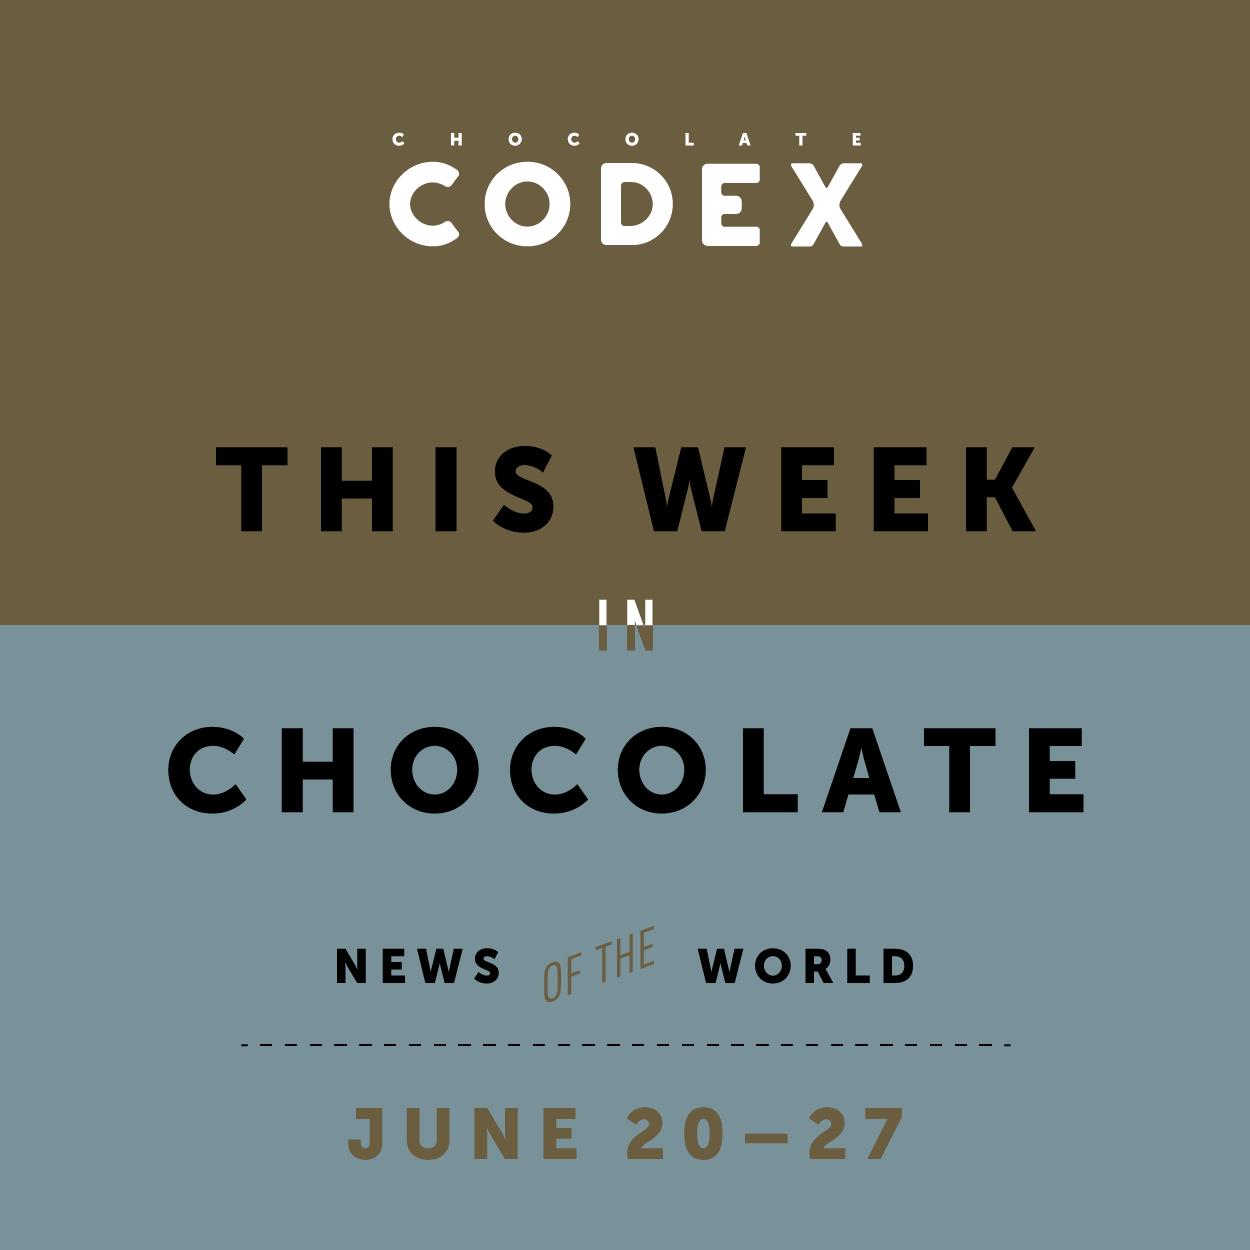 Chocolate_Codex_This_Week_in_Chocolate_Week_26